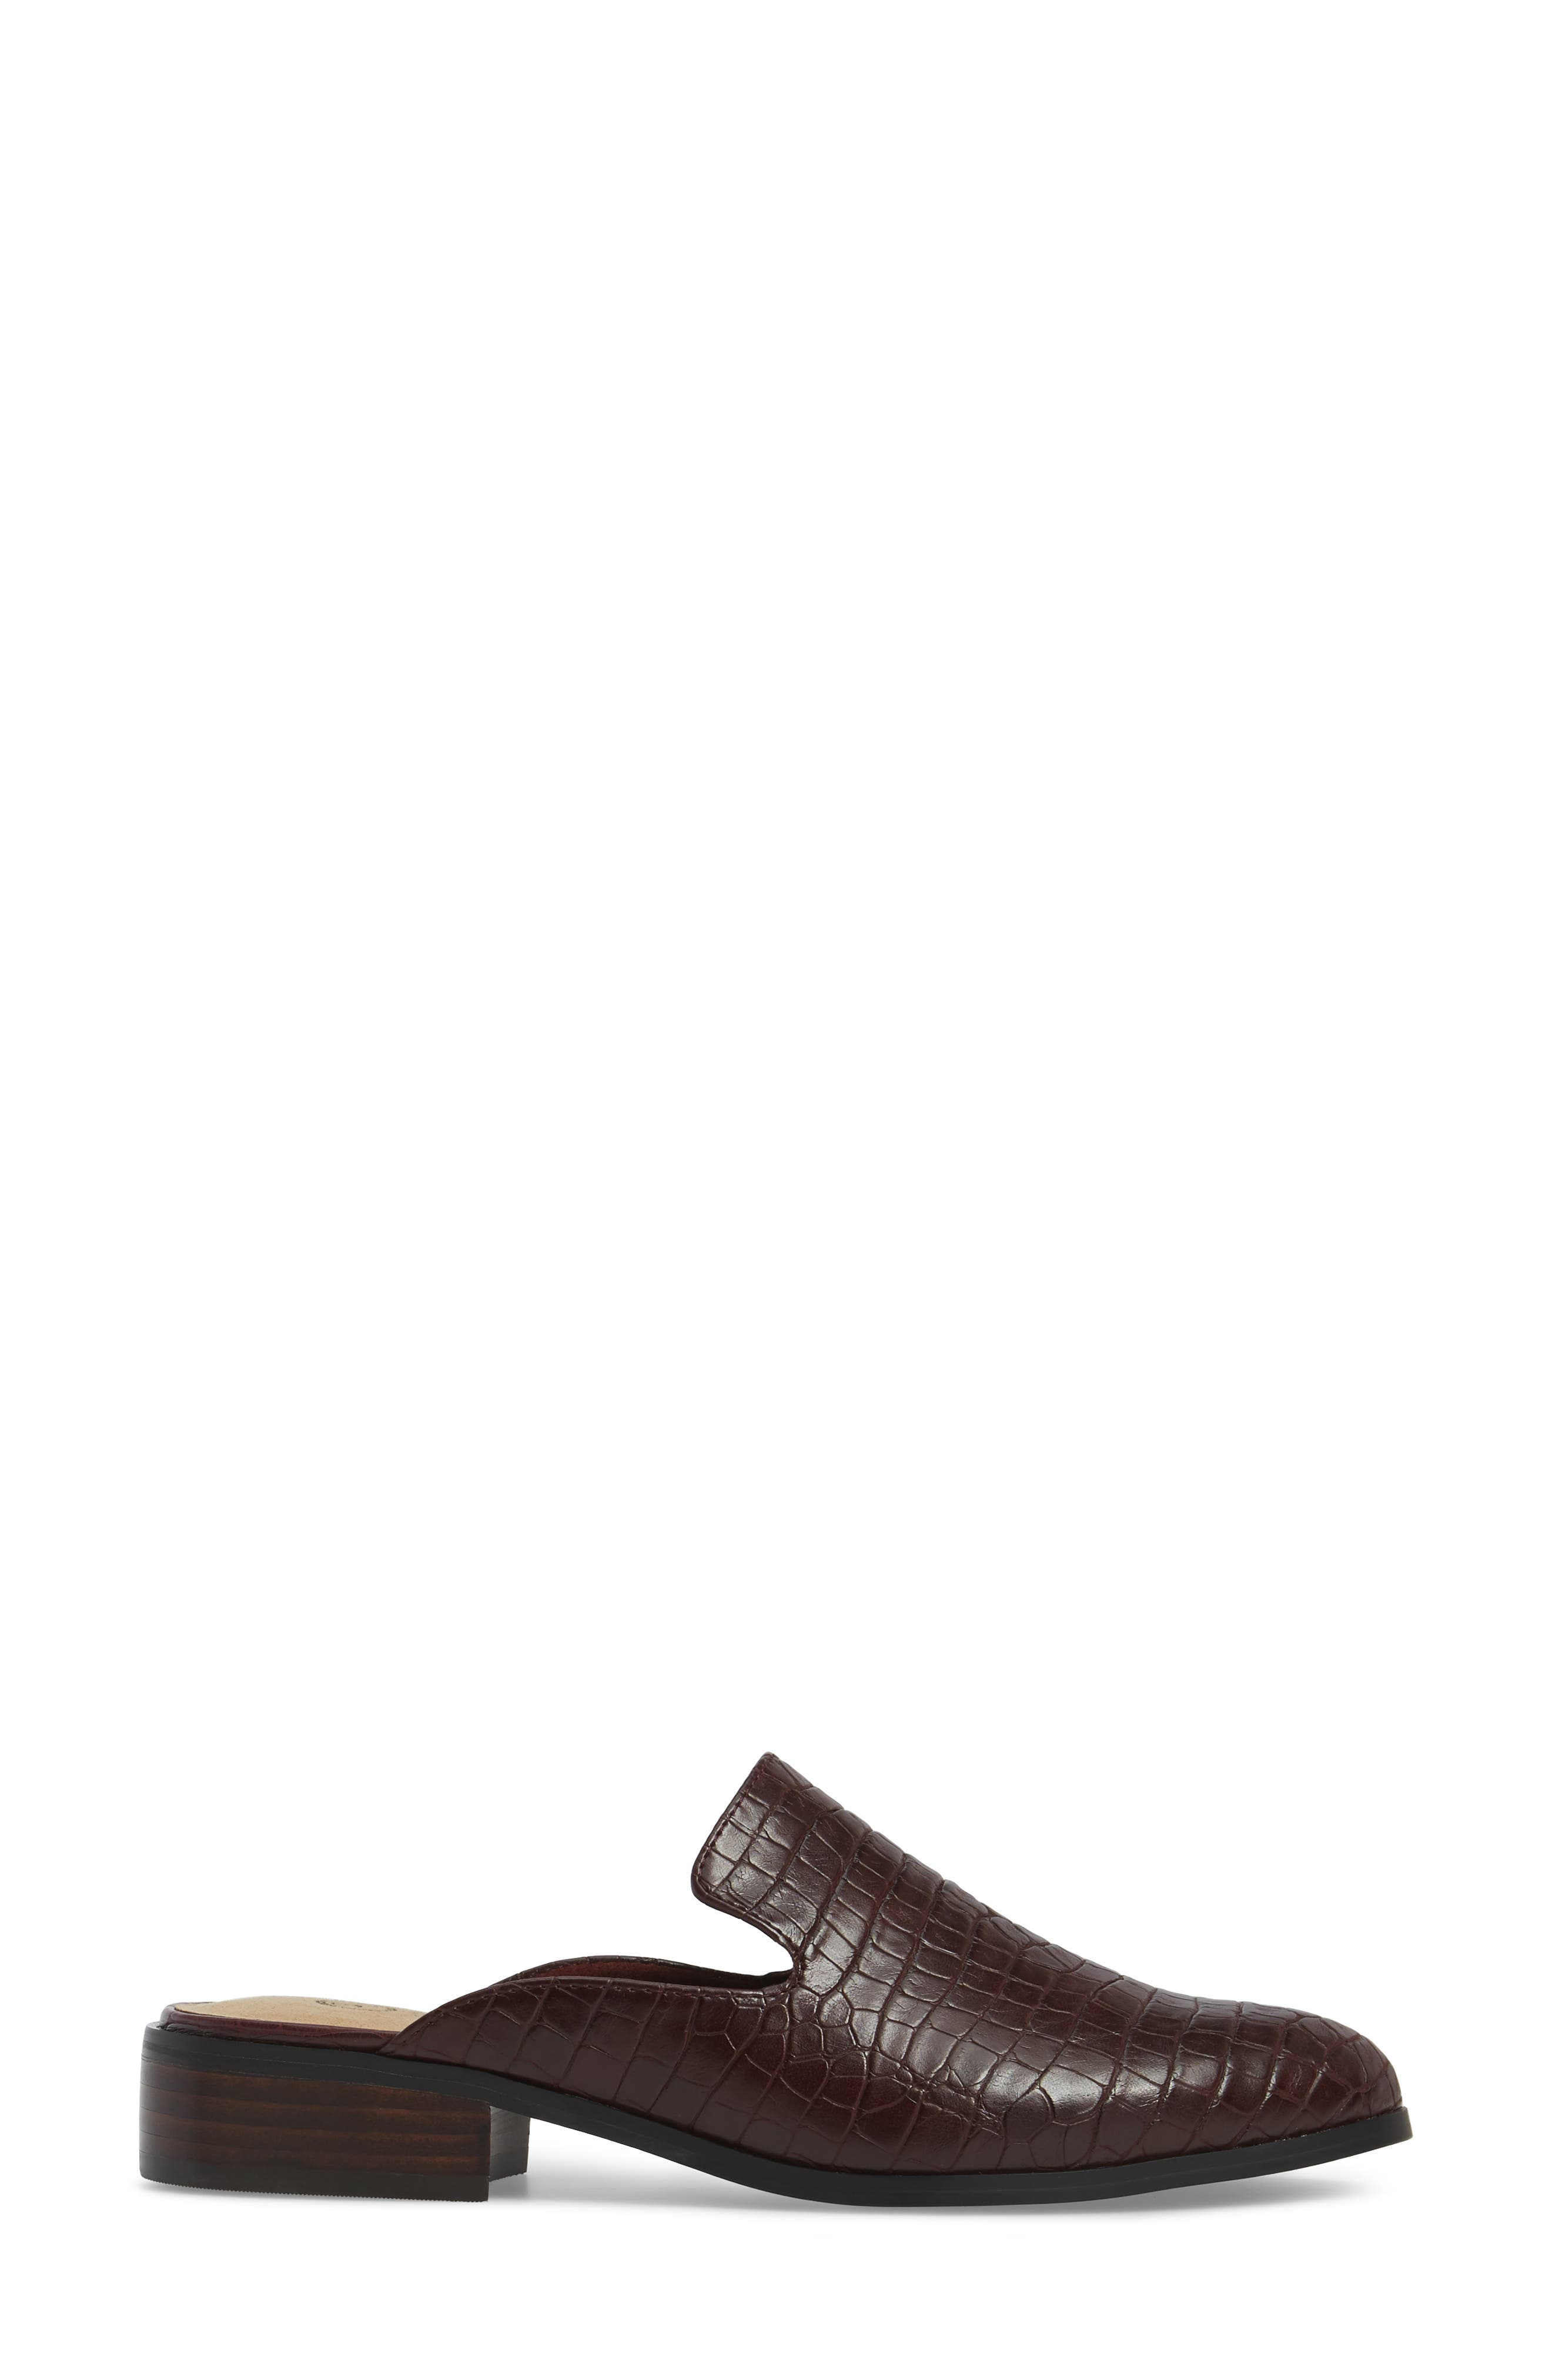 Briar II Loafer Mule,                             Alternate thumbnail 18, color,